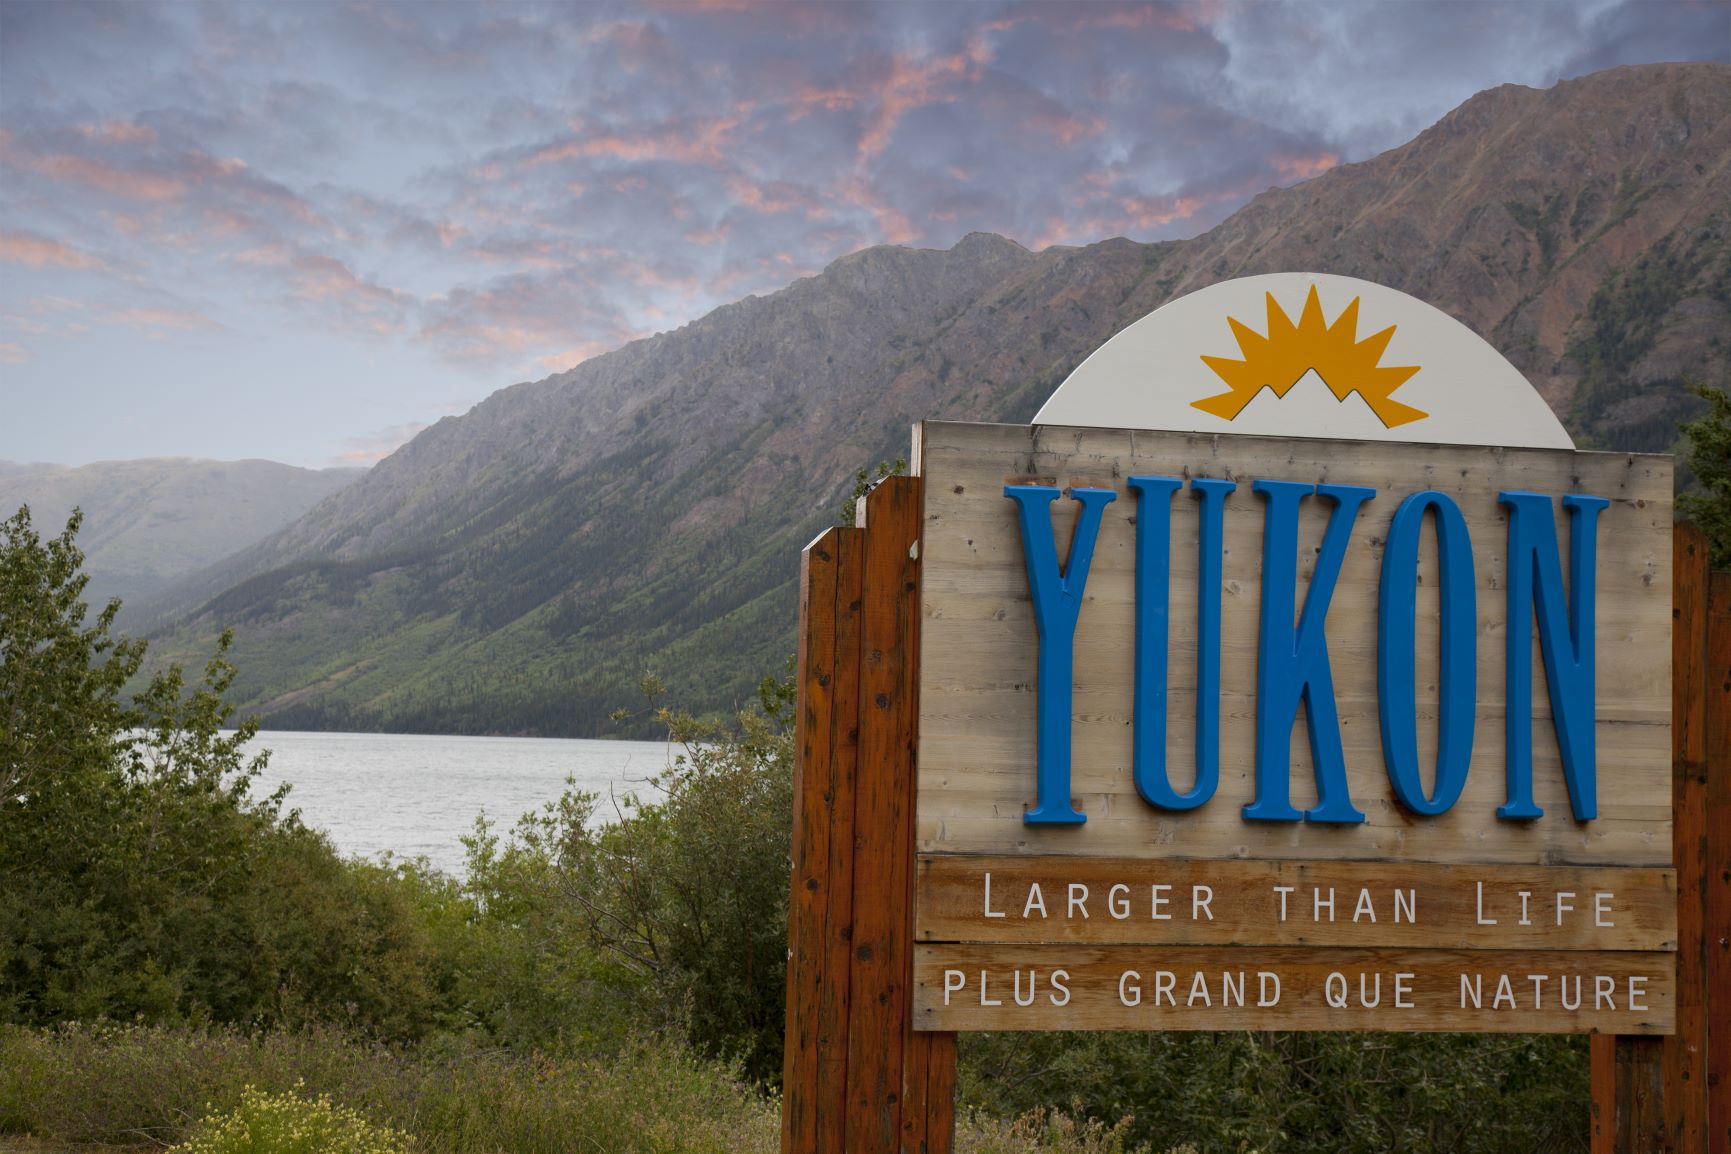 Yukon: Larger Than Life Sign with lake and mountains in background